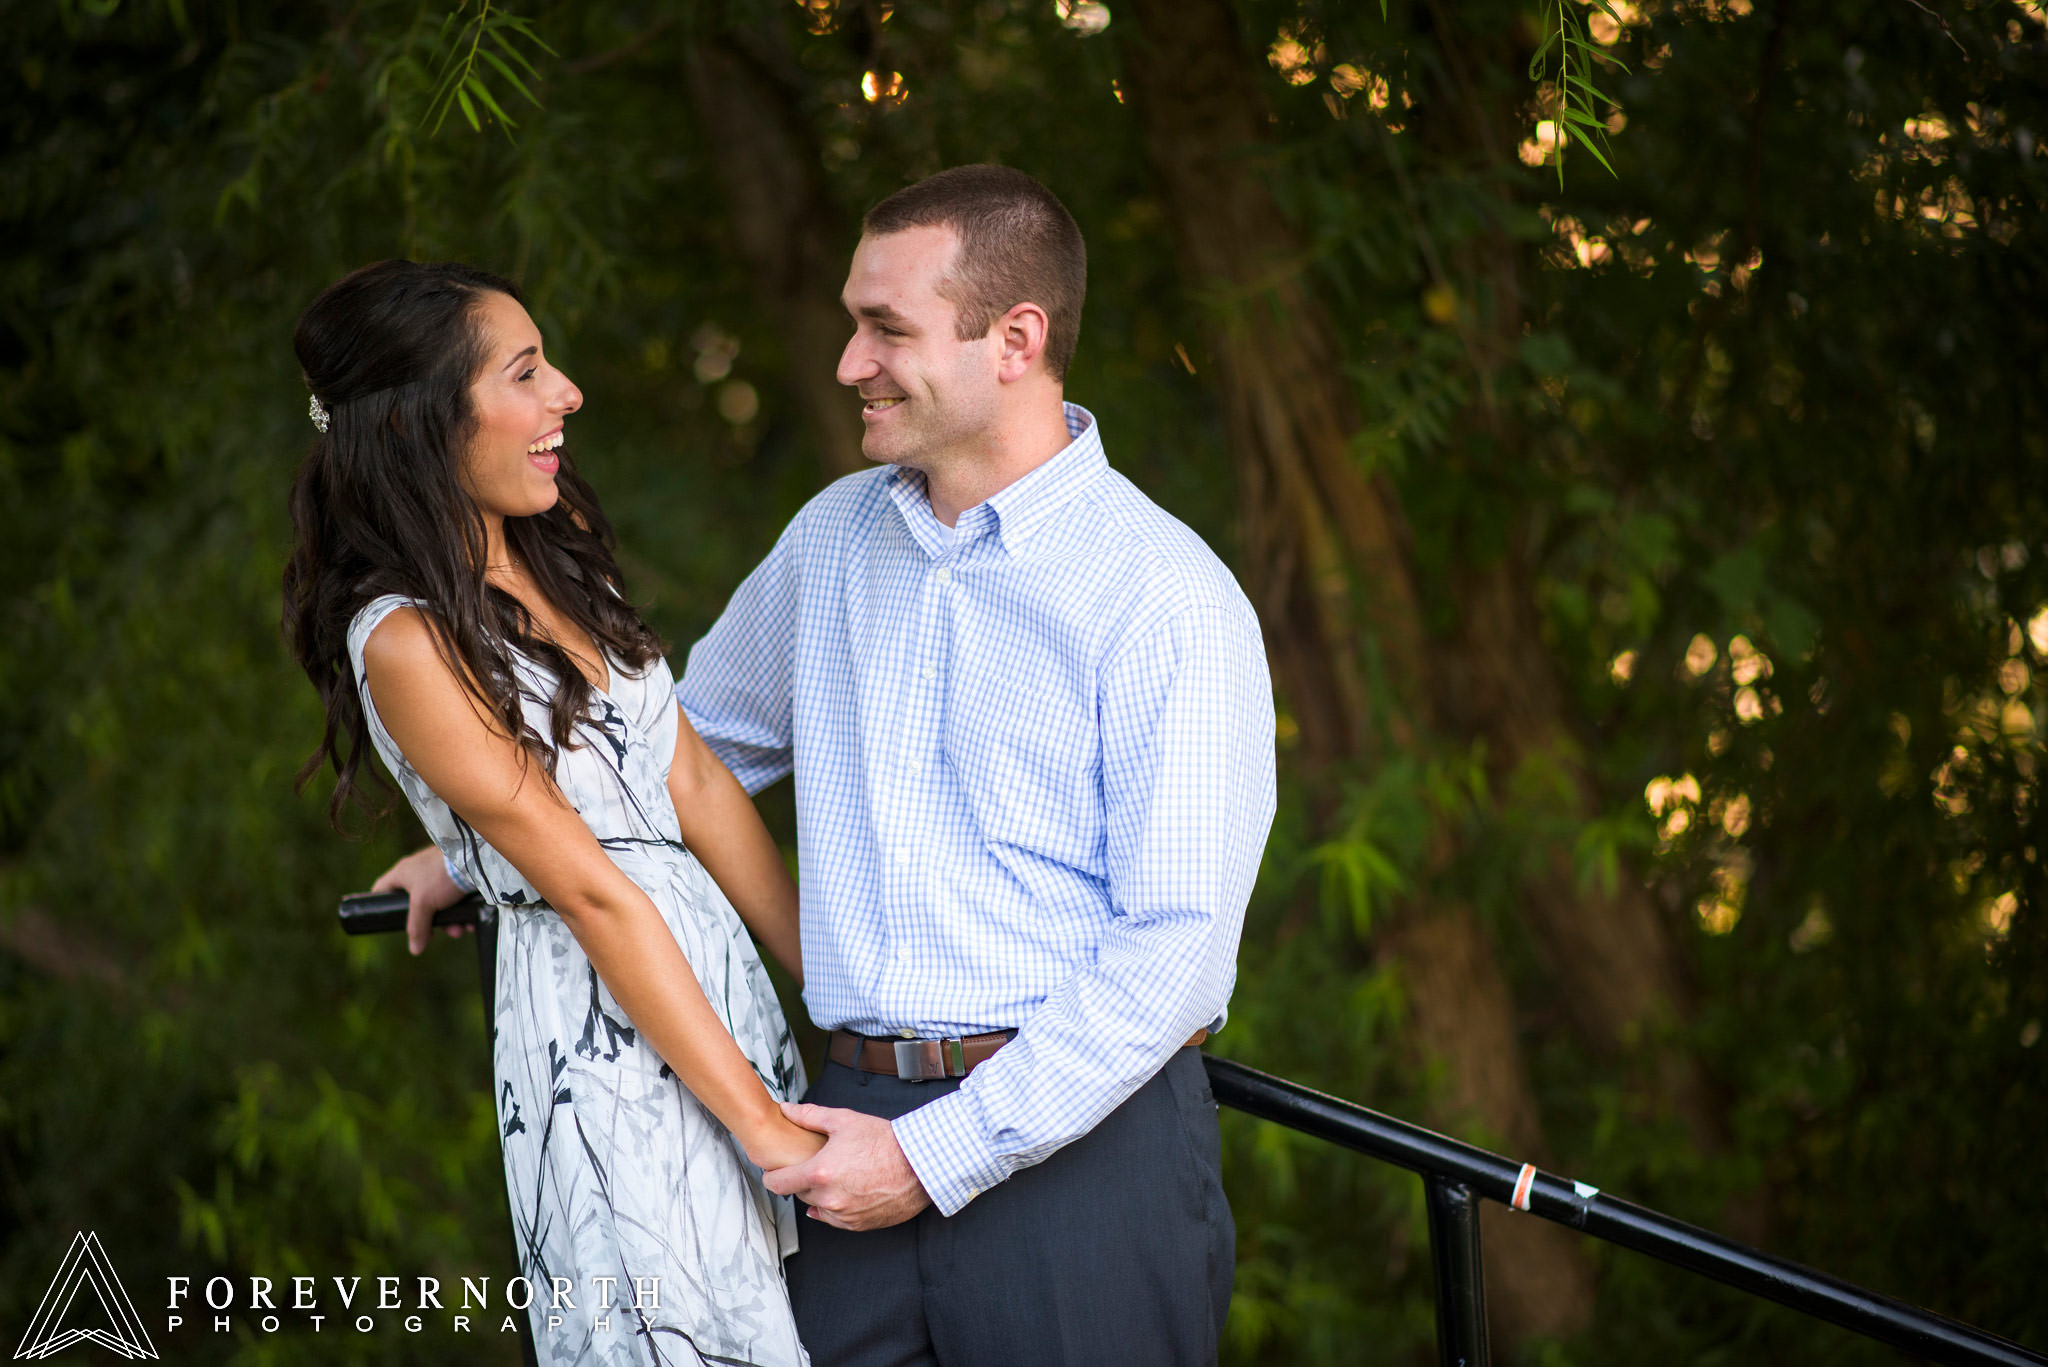 Rob-Joni-Riverside-Gardens-Park-Engagement-Photos-09.JPG